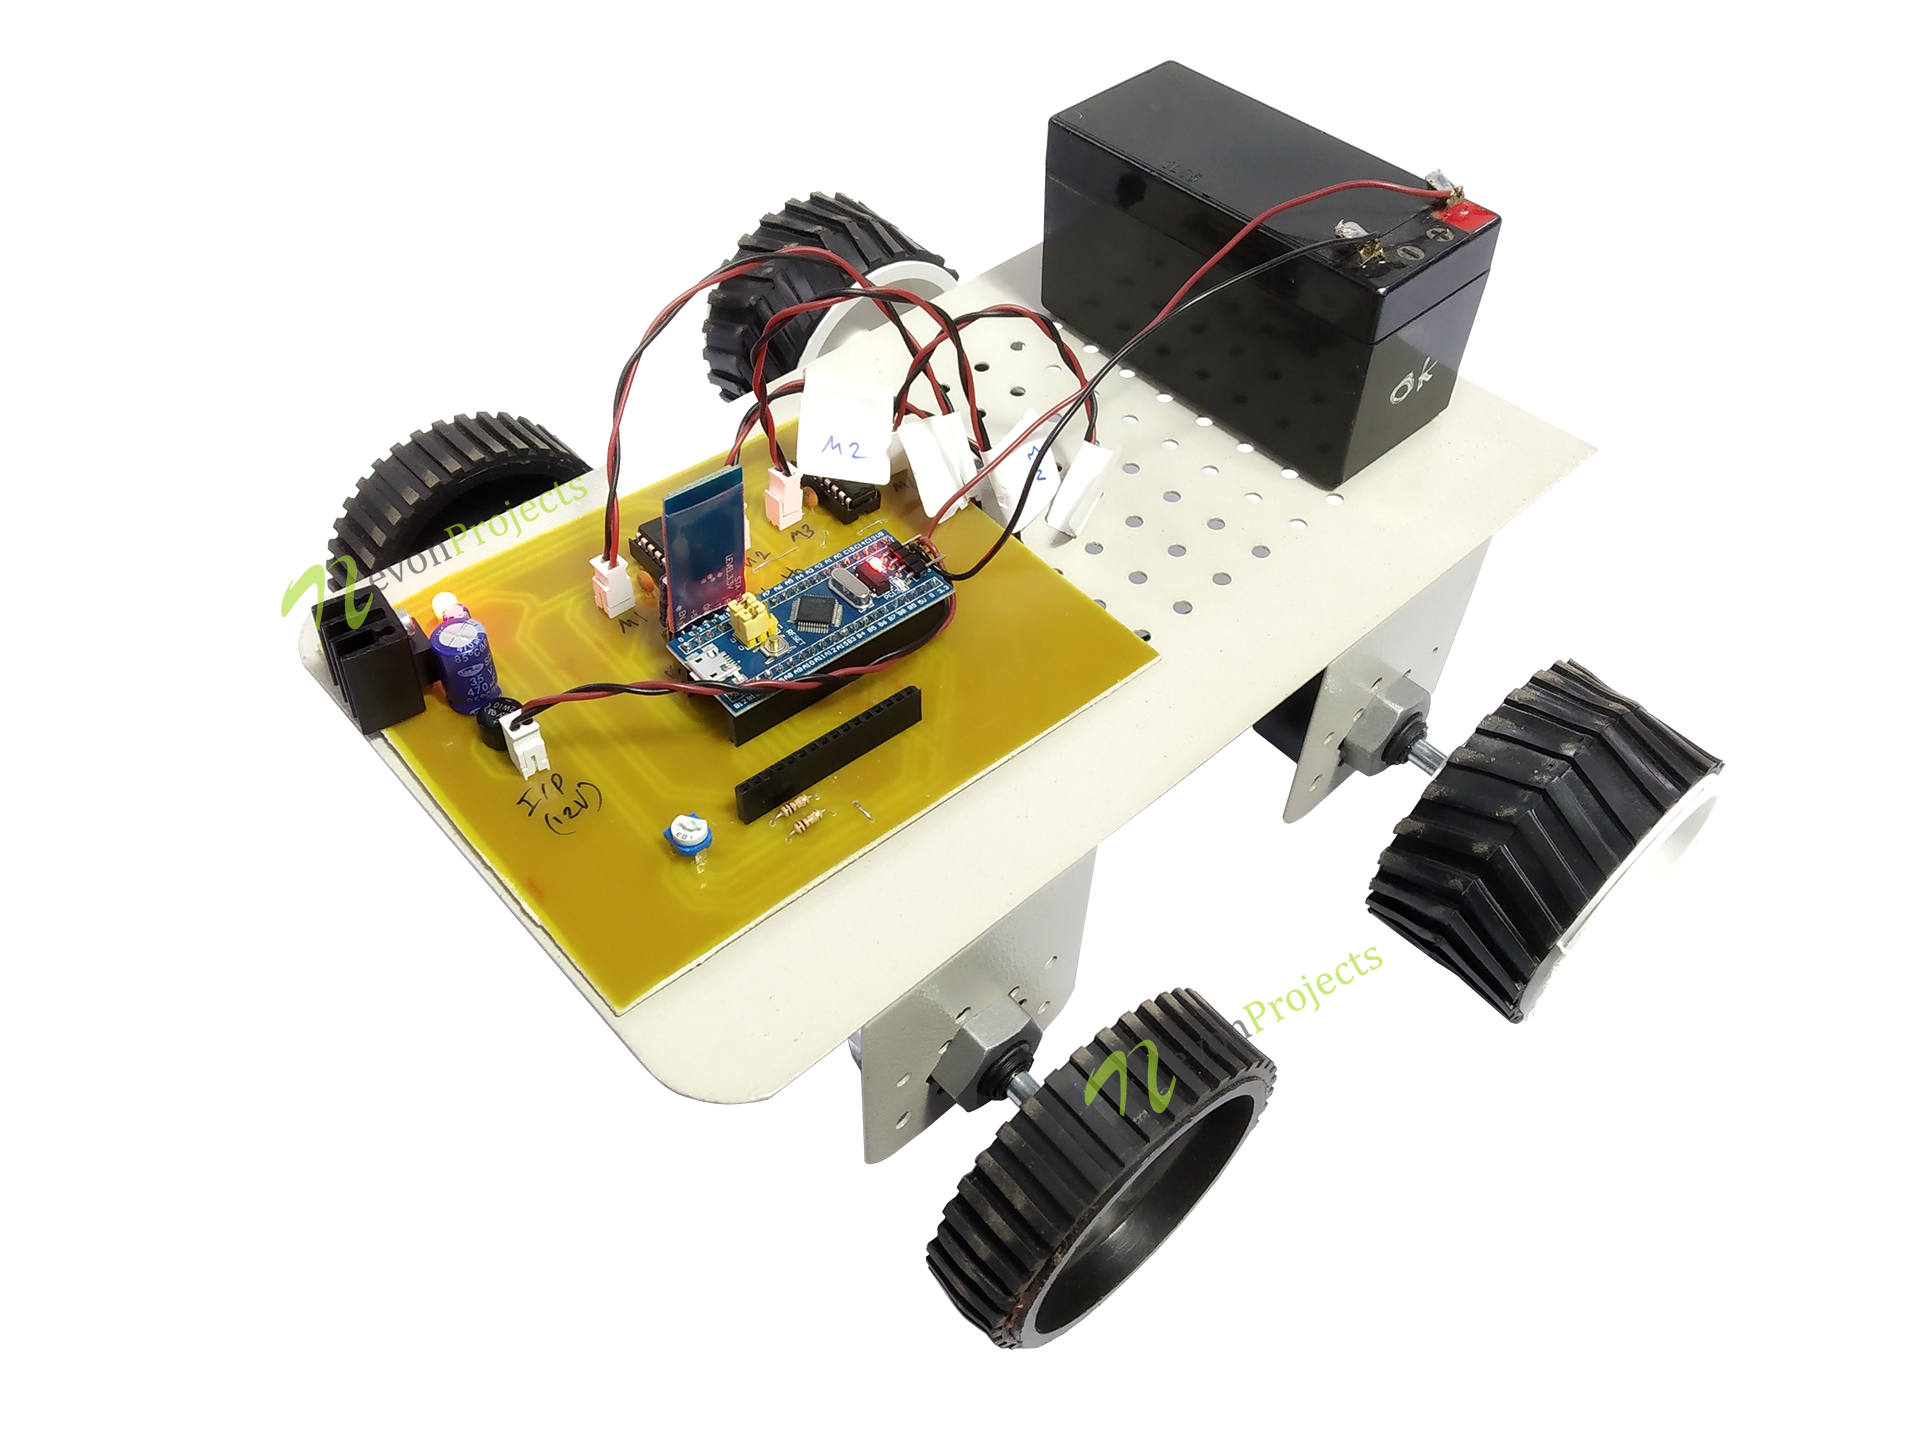 Accurate Speed Control Of Electric Car Using ARM